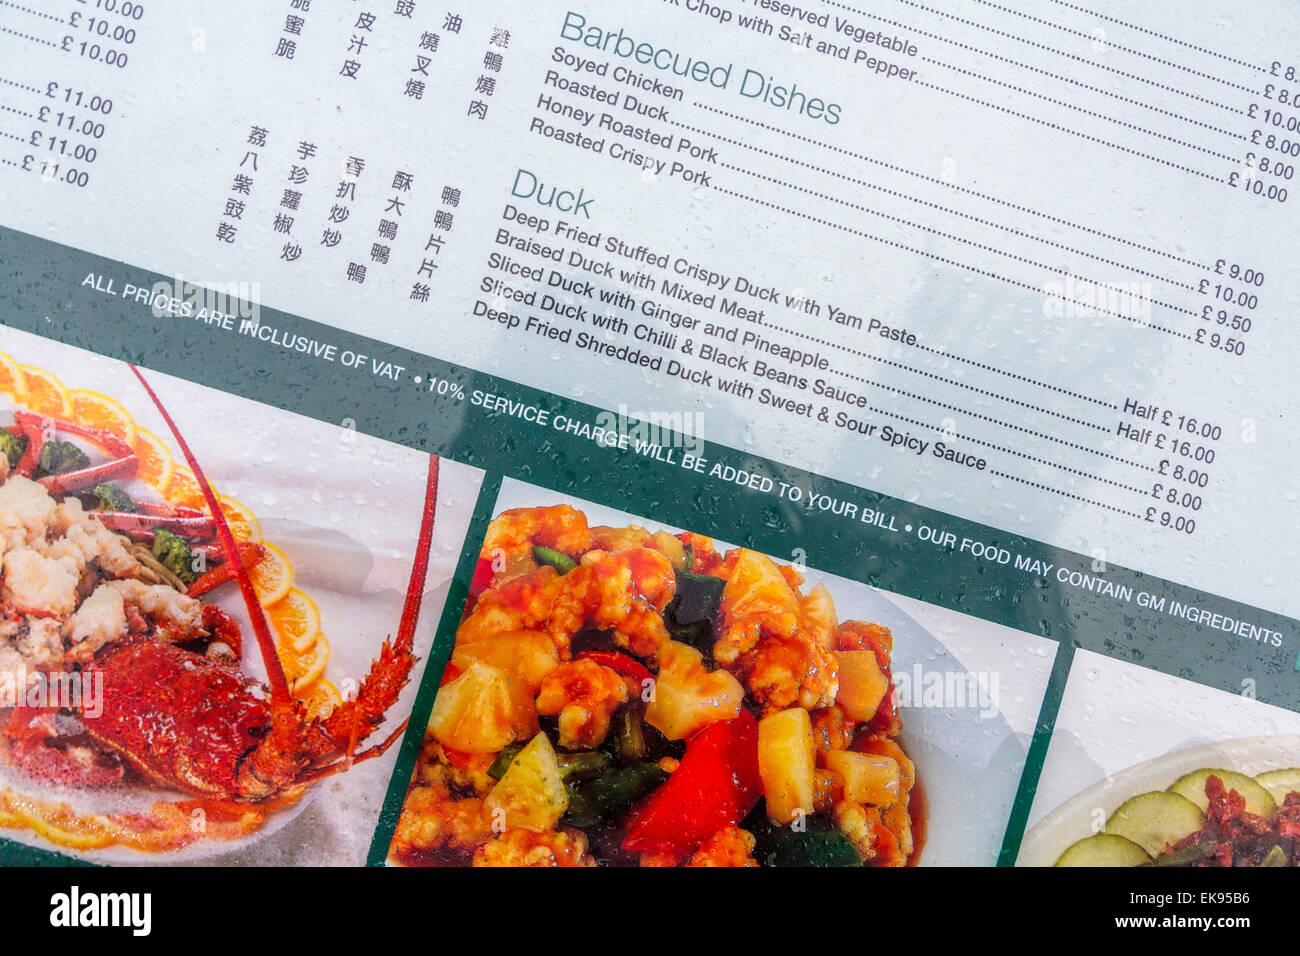 Chinese Menu Stockfotos & Chinese Menu Bilder - Alamy